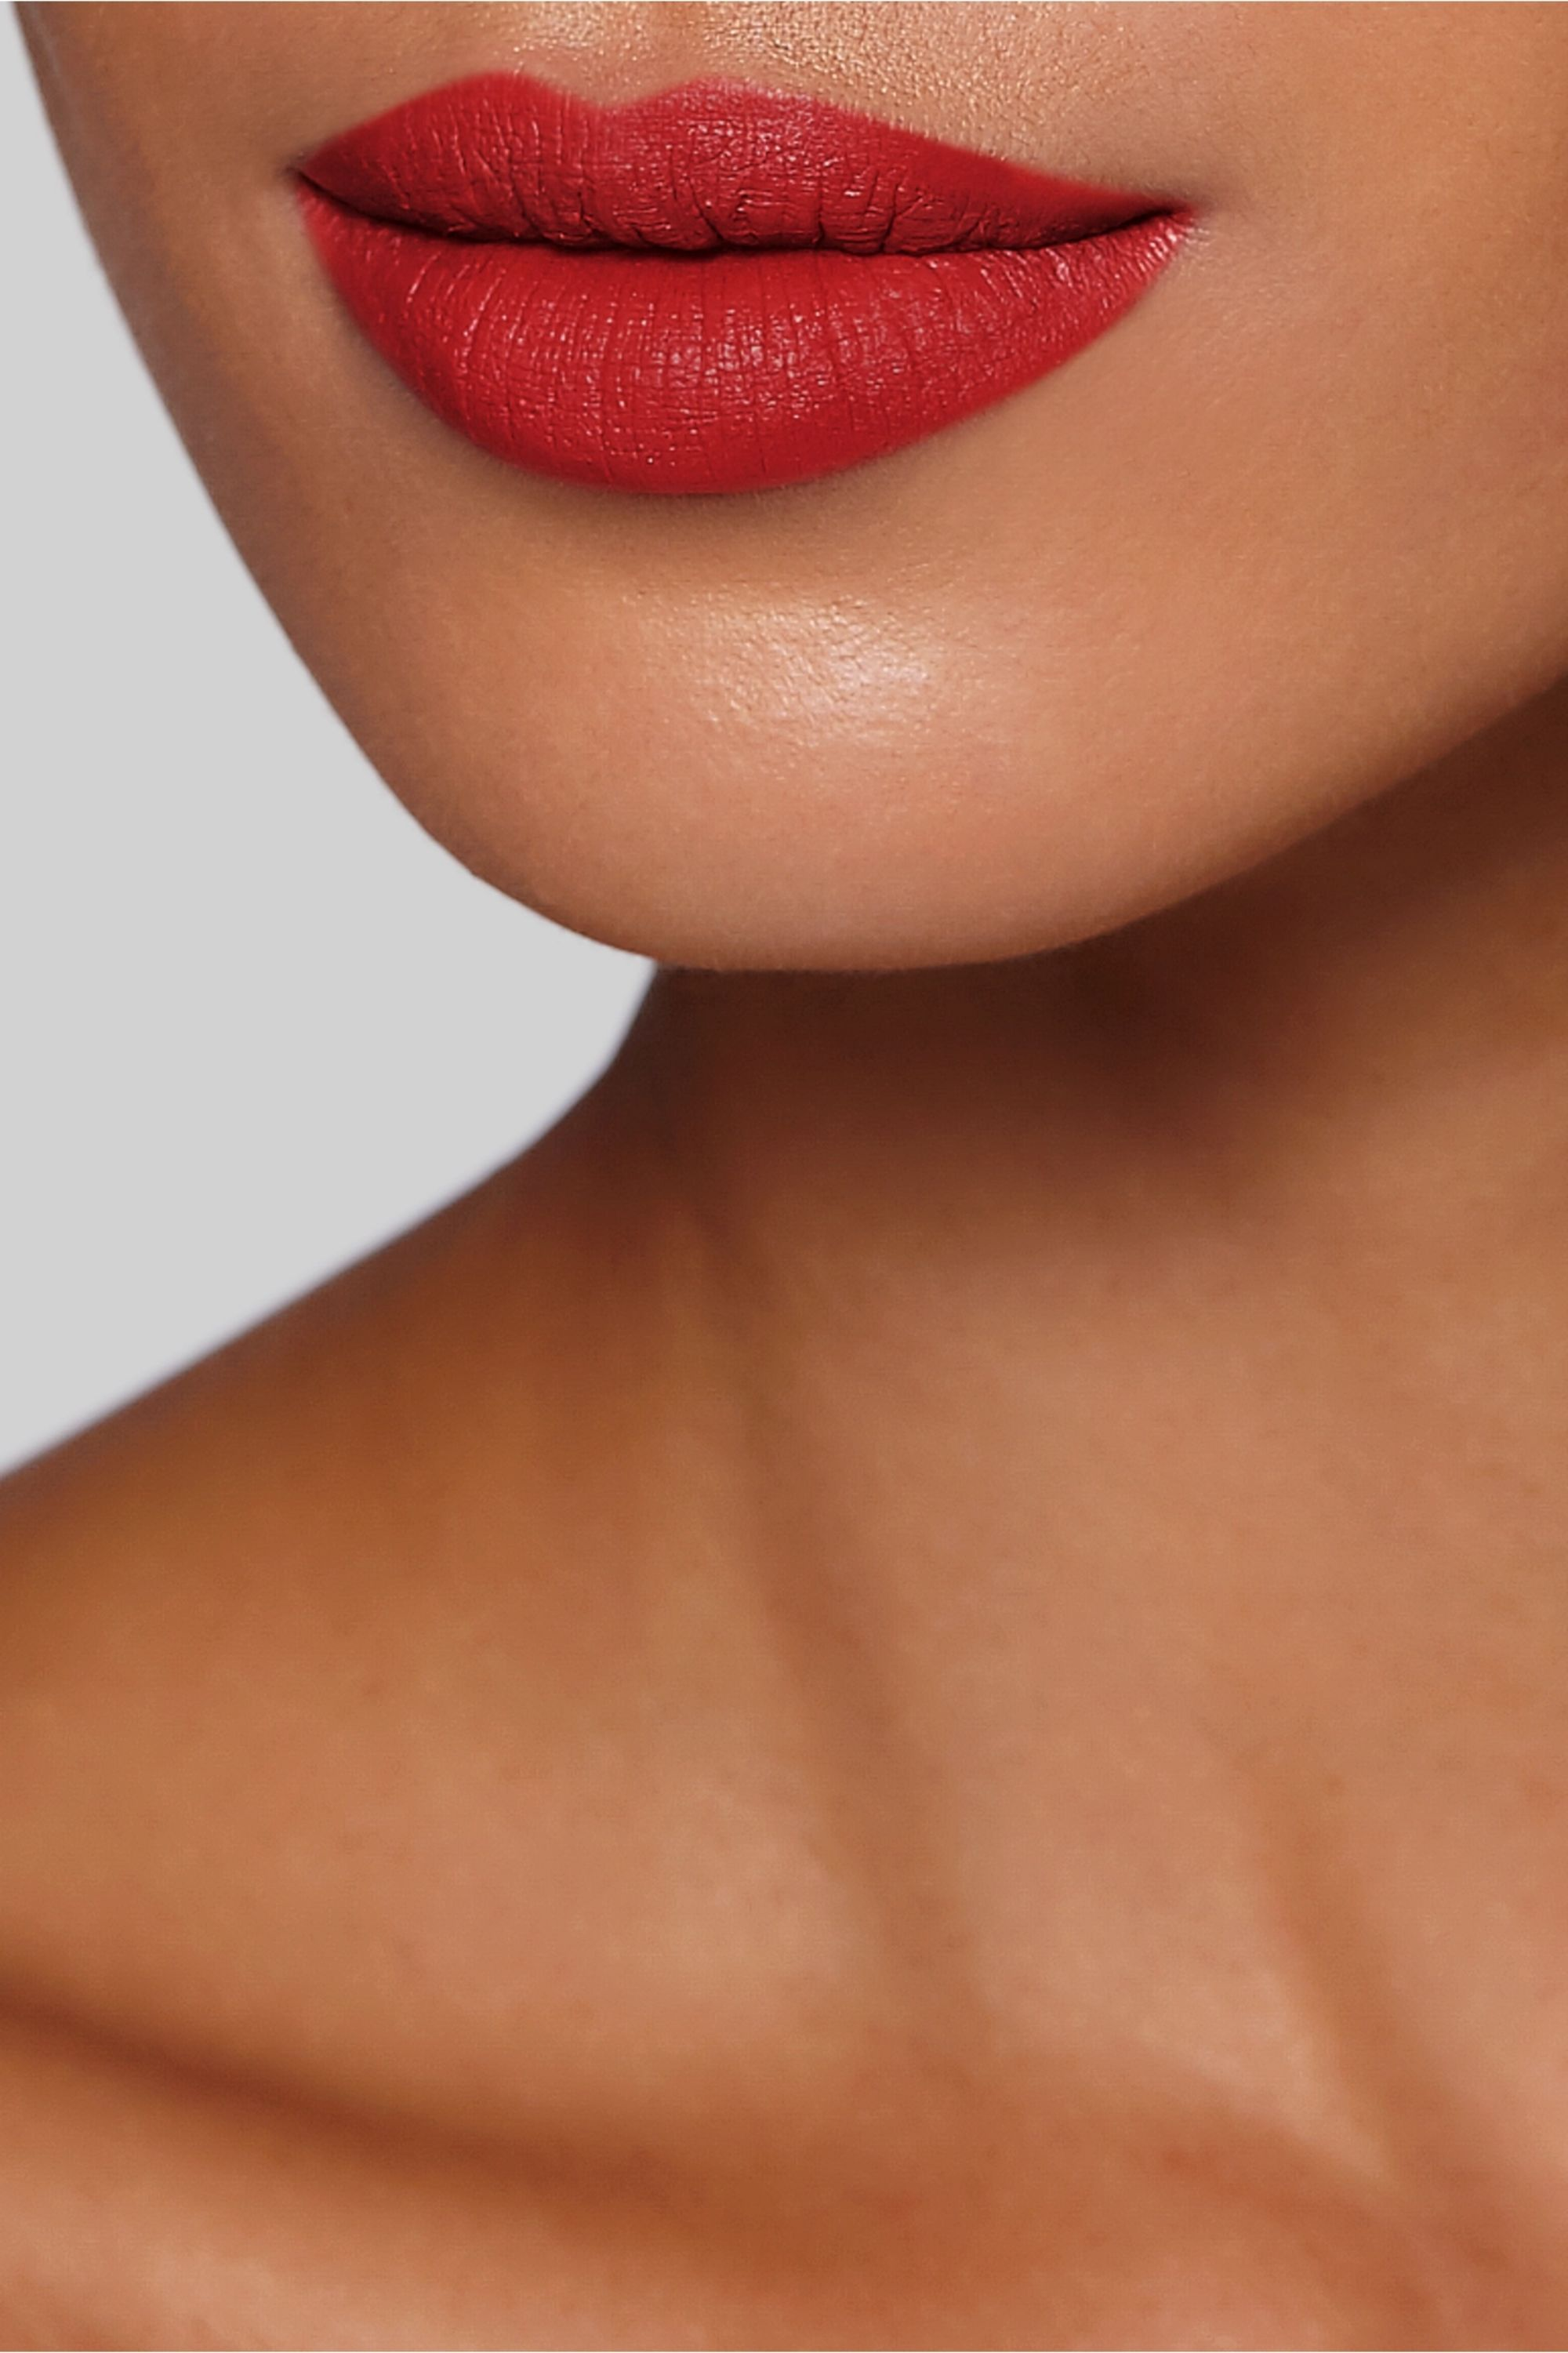 Christian Louboutin Beauty Velvet Matte Lip Colour - Diva